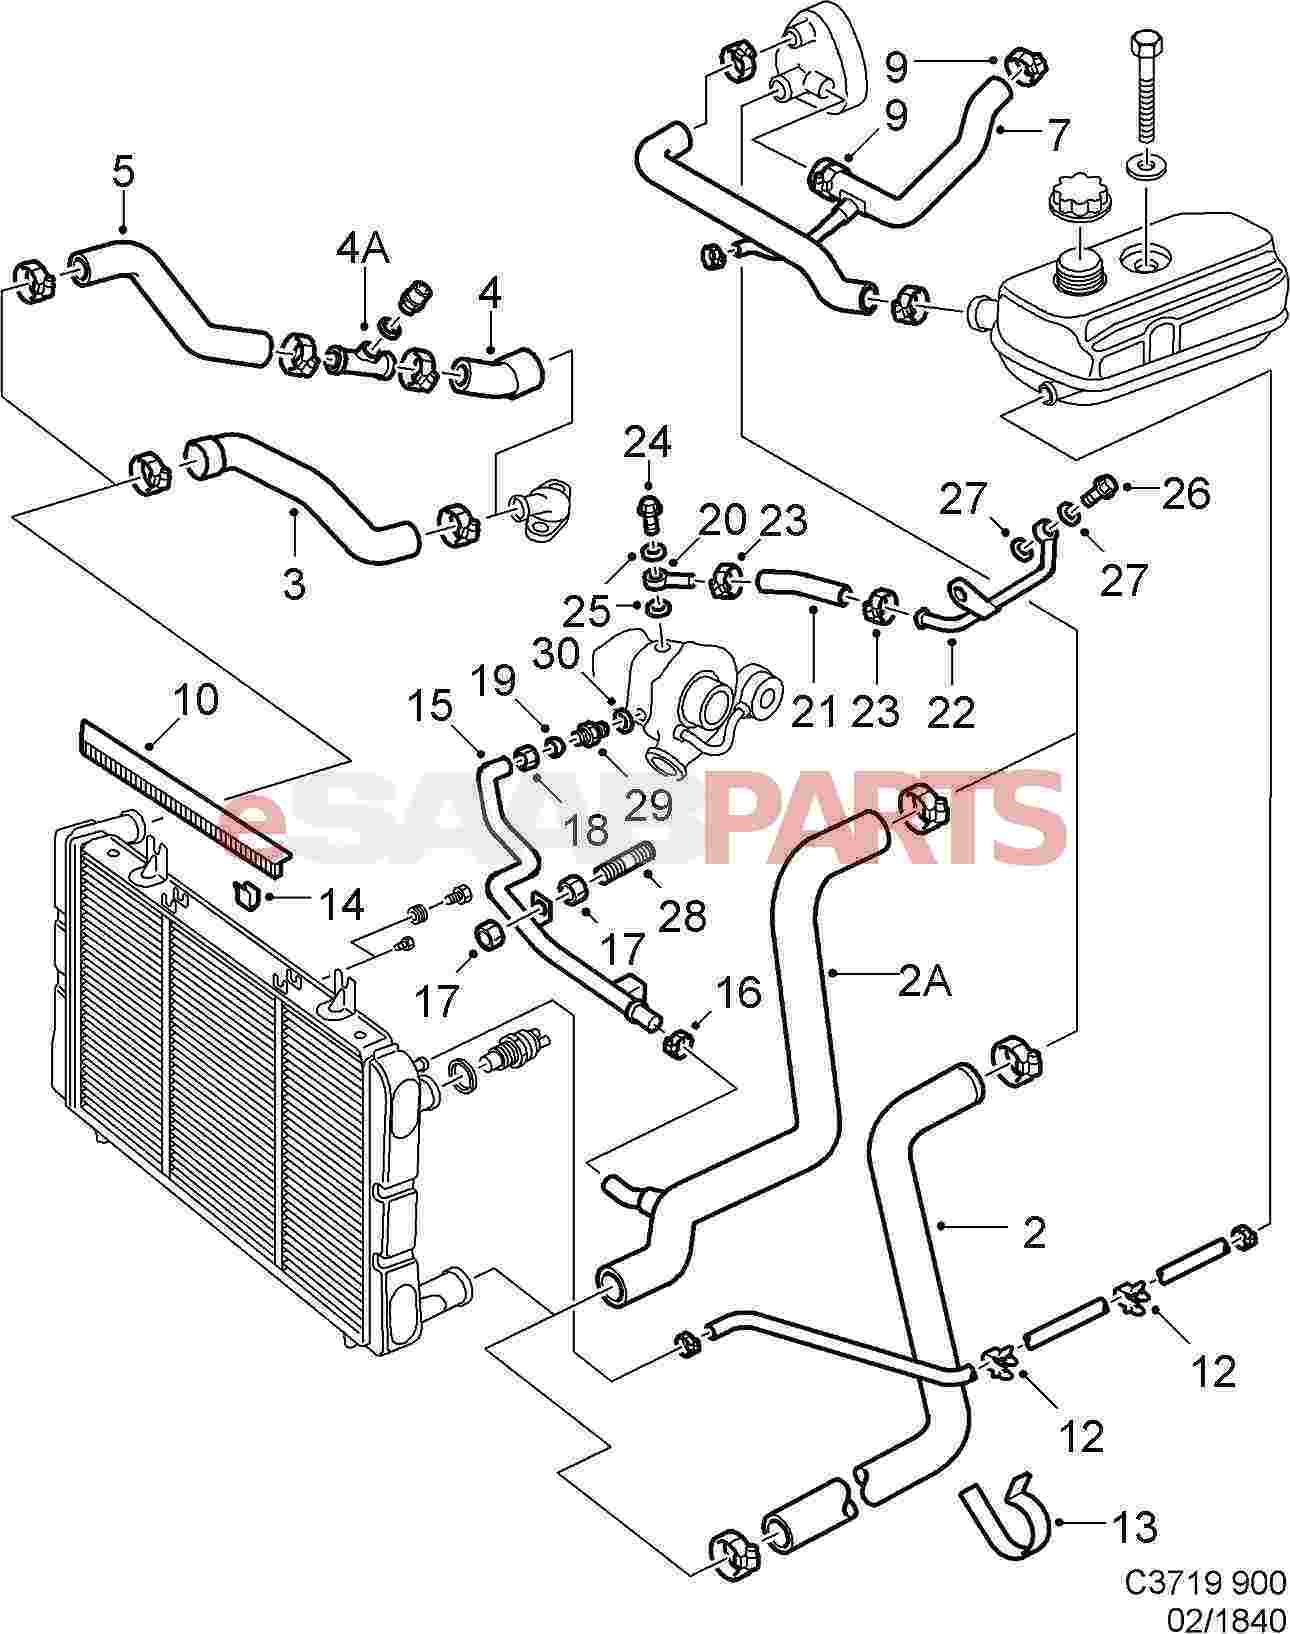 vw passat b7 wiring diagram auto electrical wiring diagram 2007 Tahoe Fuse Box 7970080 saab hose cl